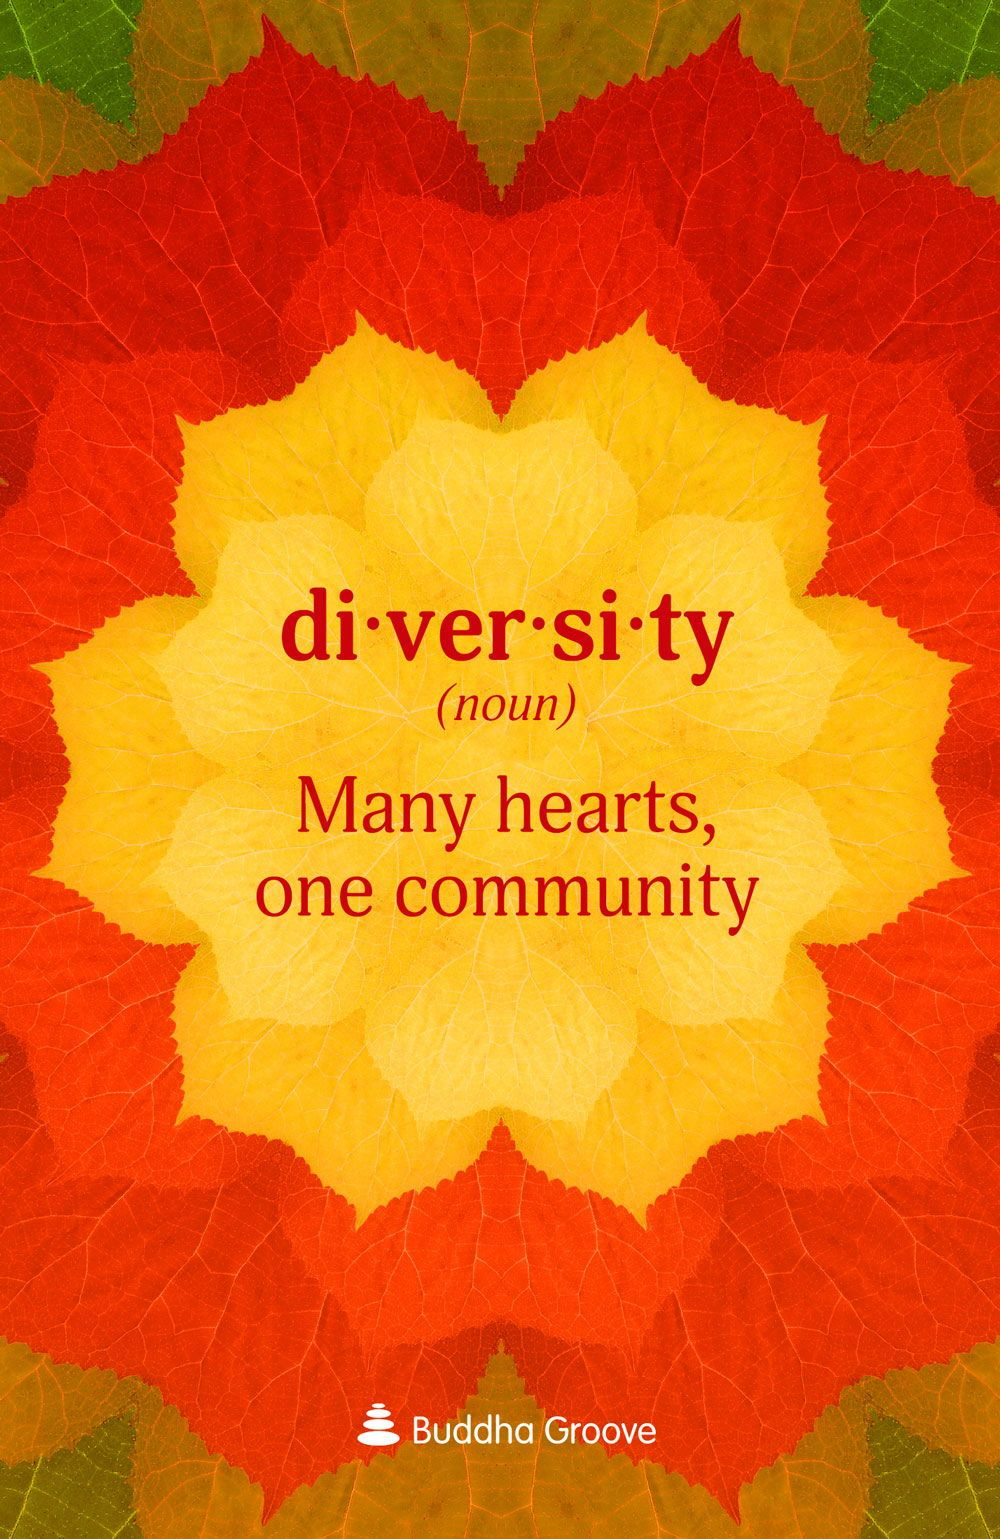 Word of the Day: Diversity